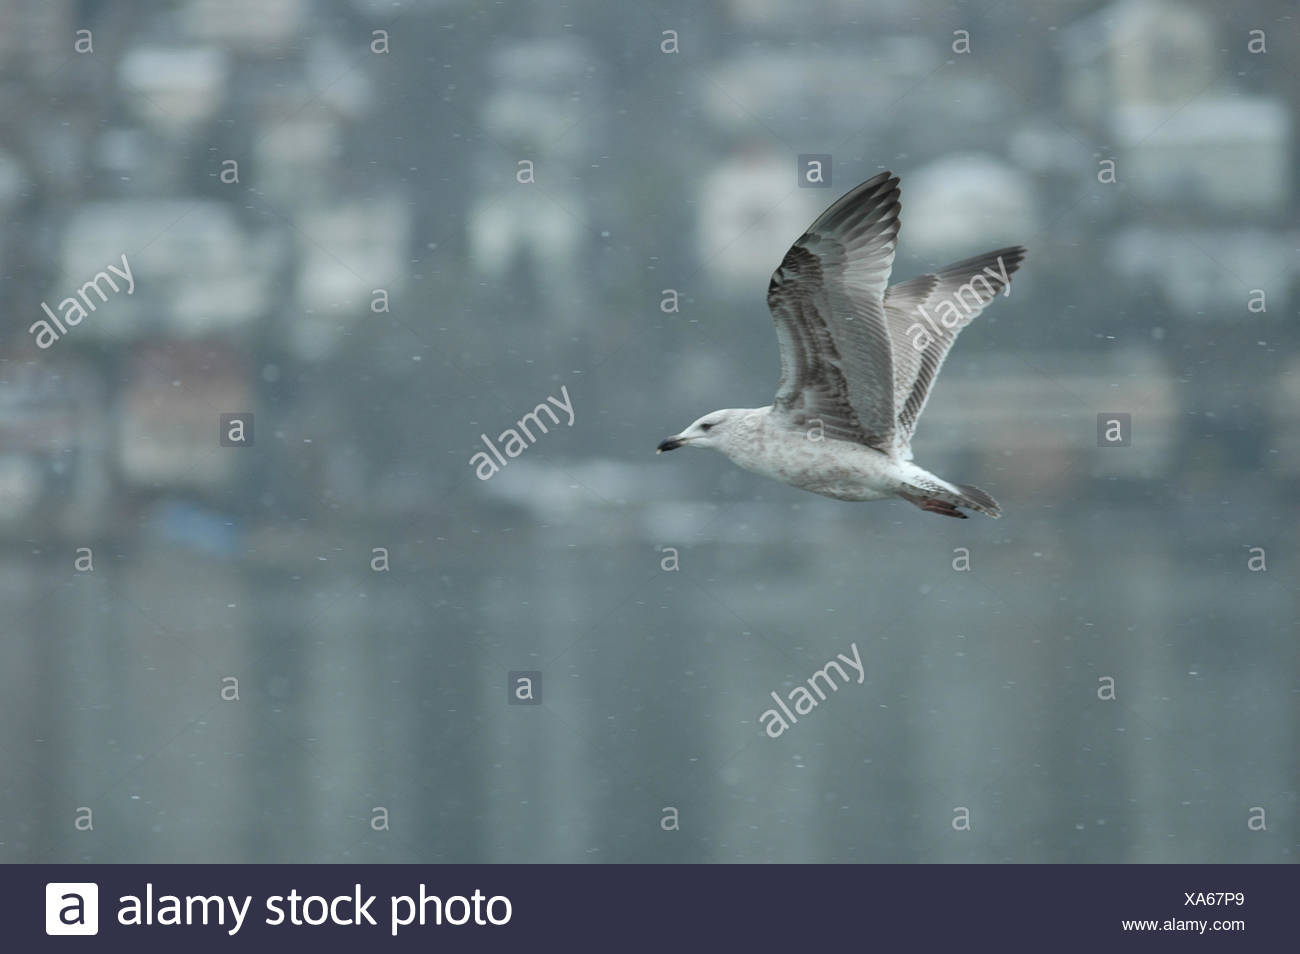 gull in flug1 - Stock Image